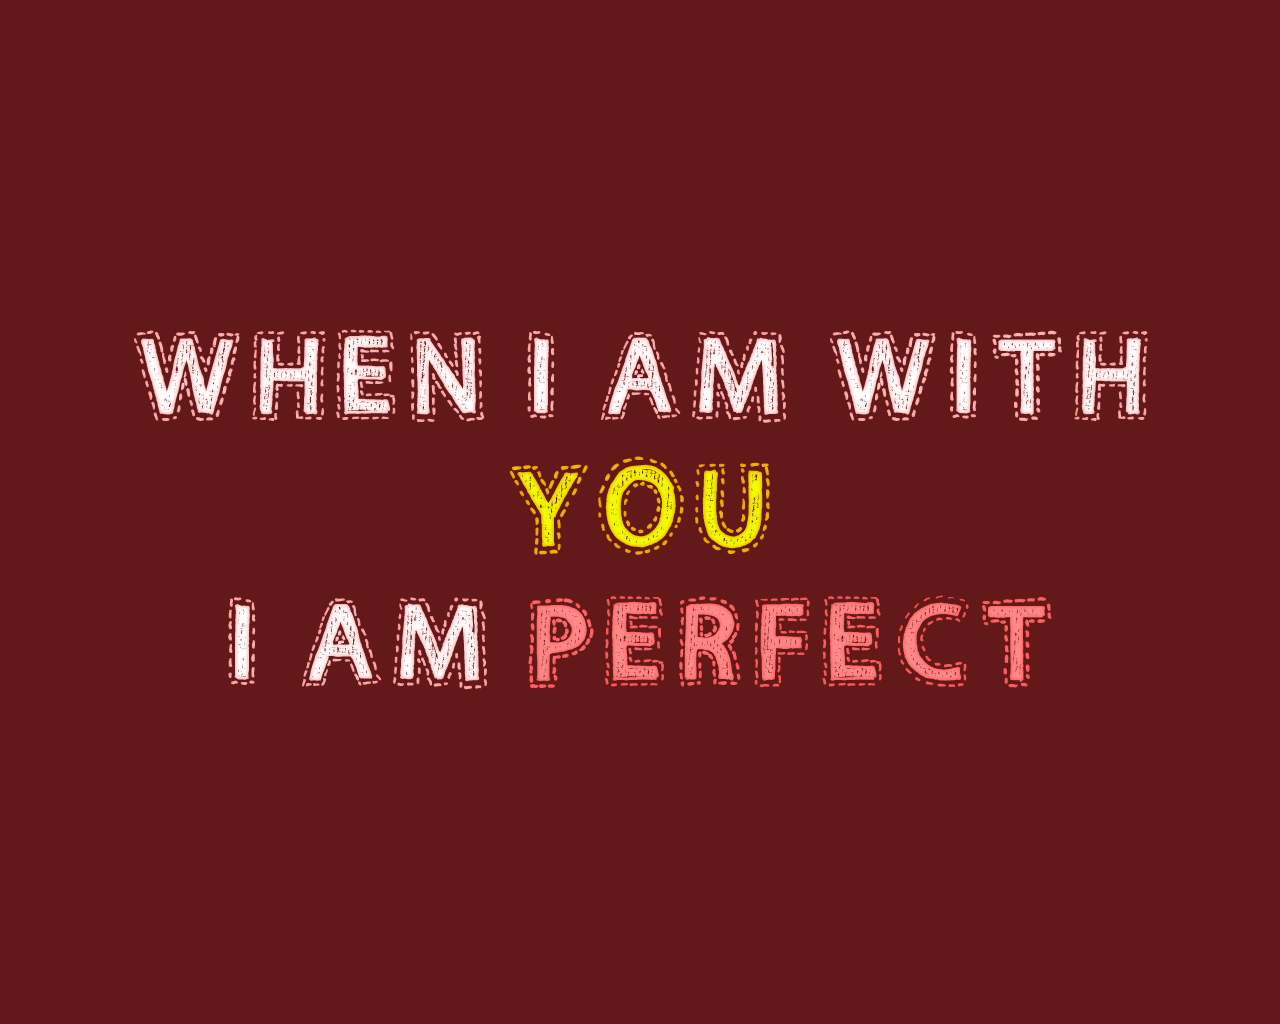 When i am with you i am perfect